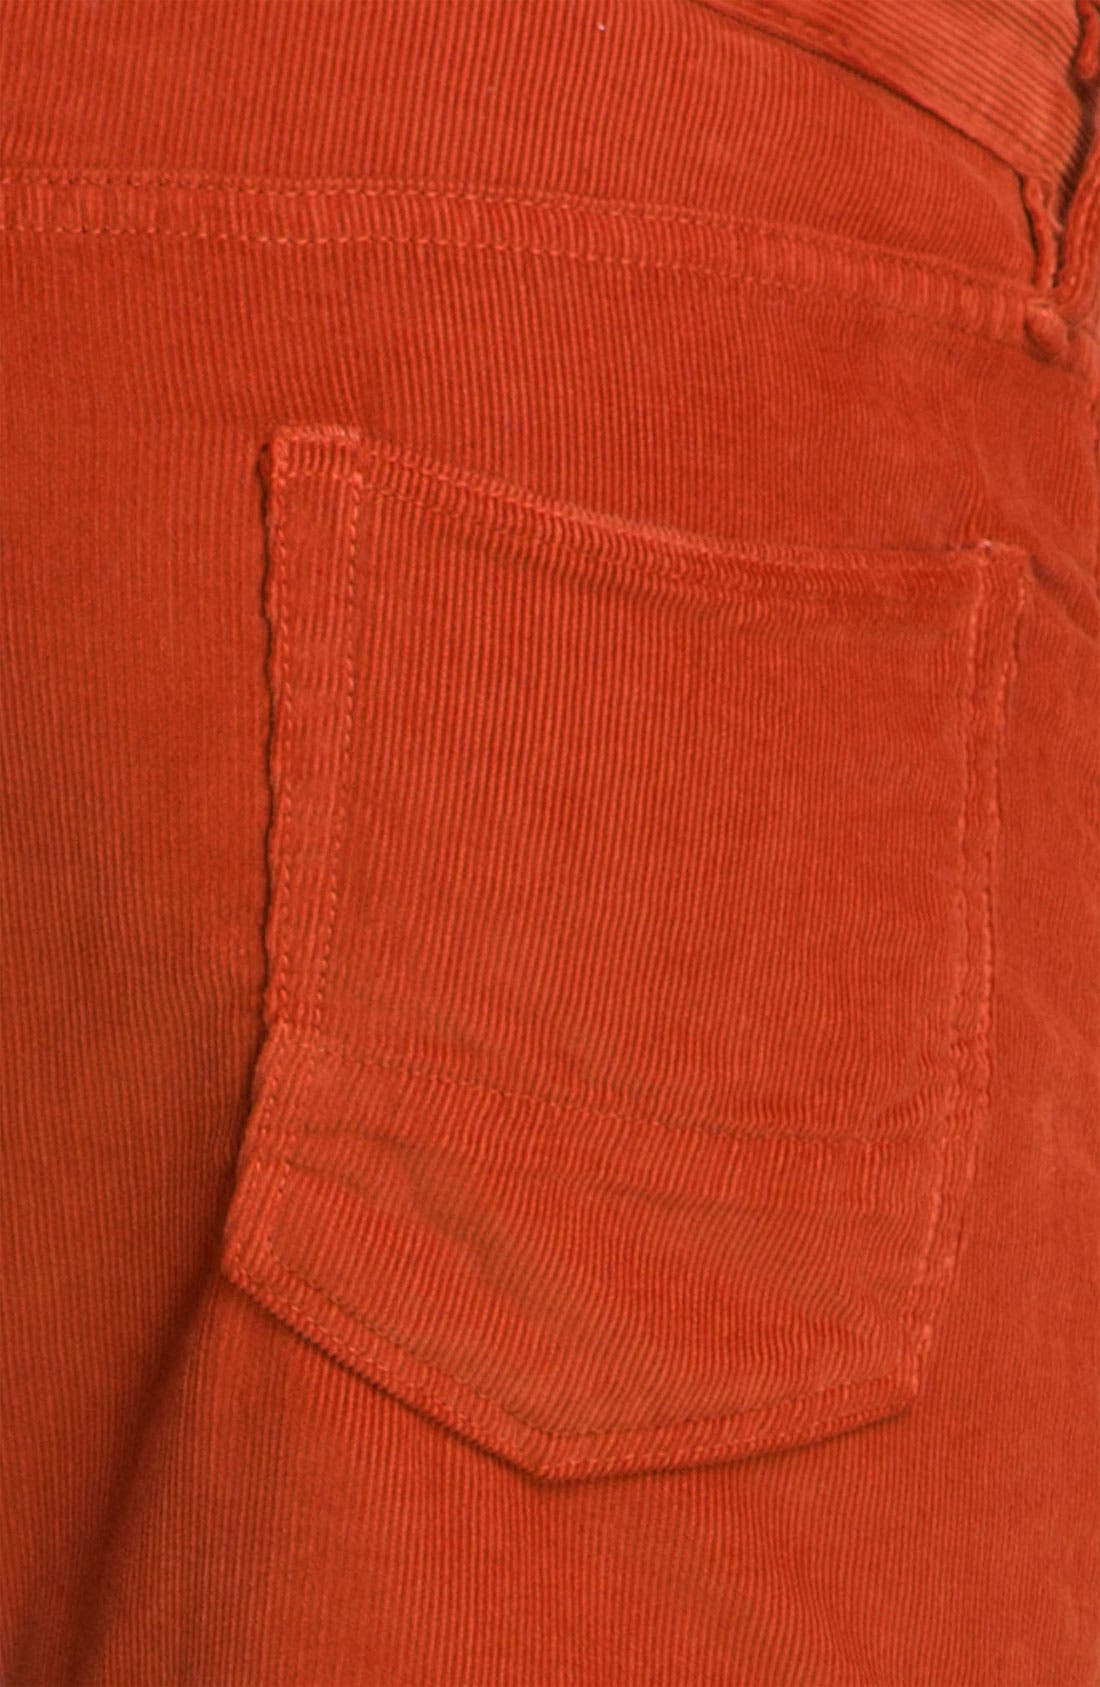 Alternate Image 3  - NSF Clothing Slim Straight Leg Corduroy Pants